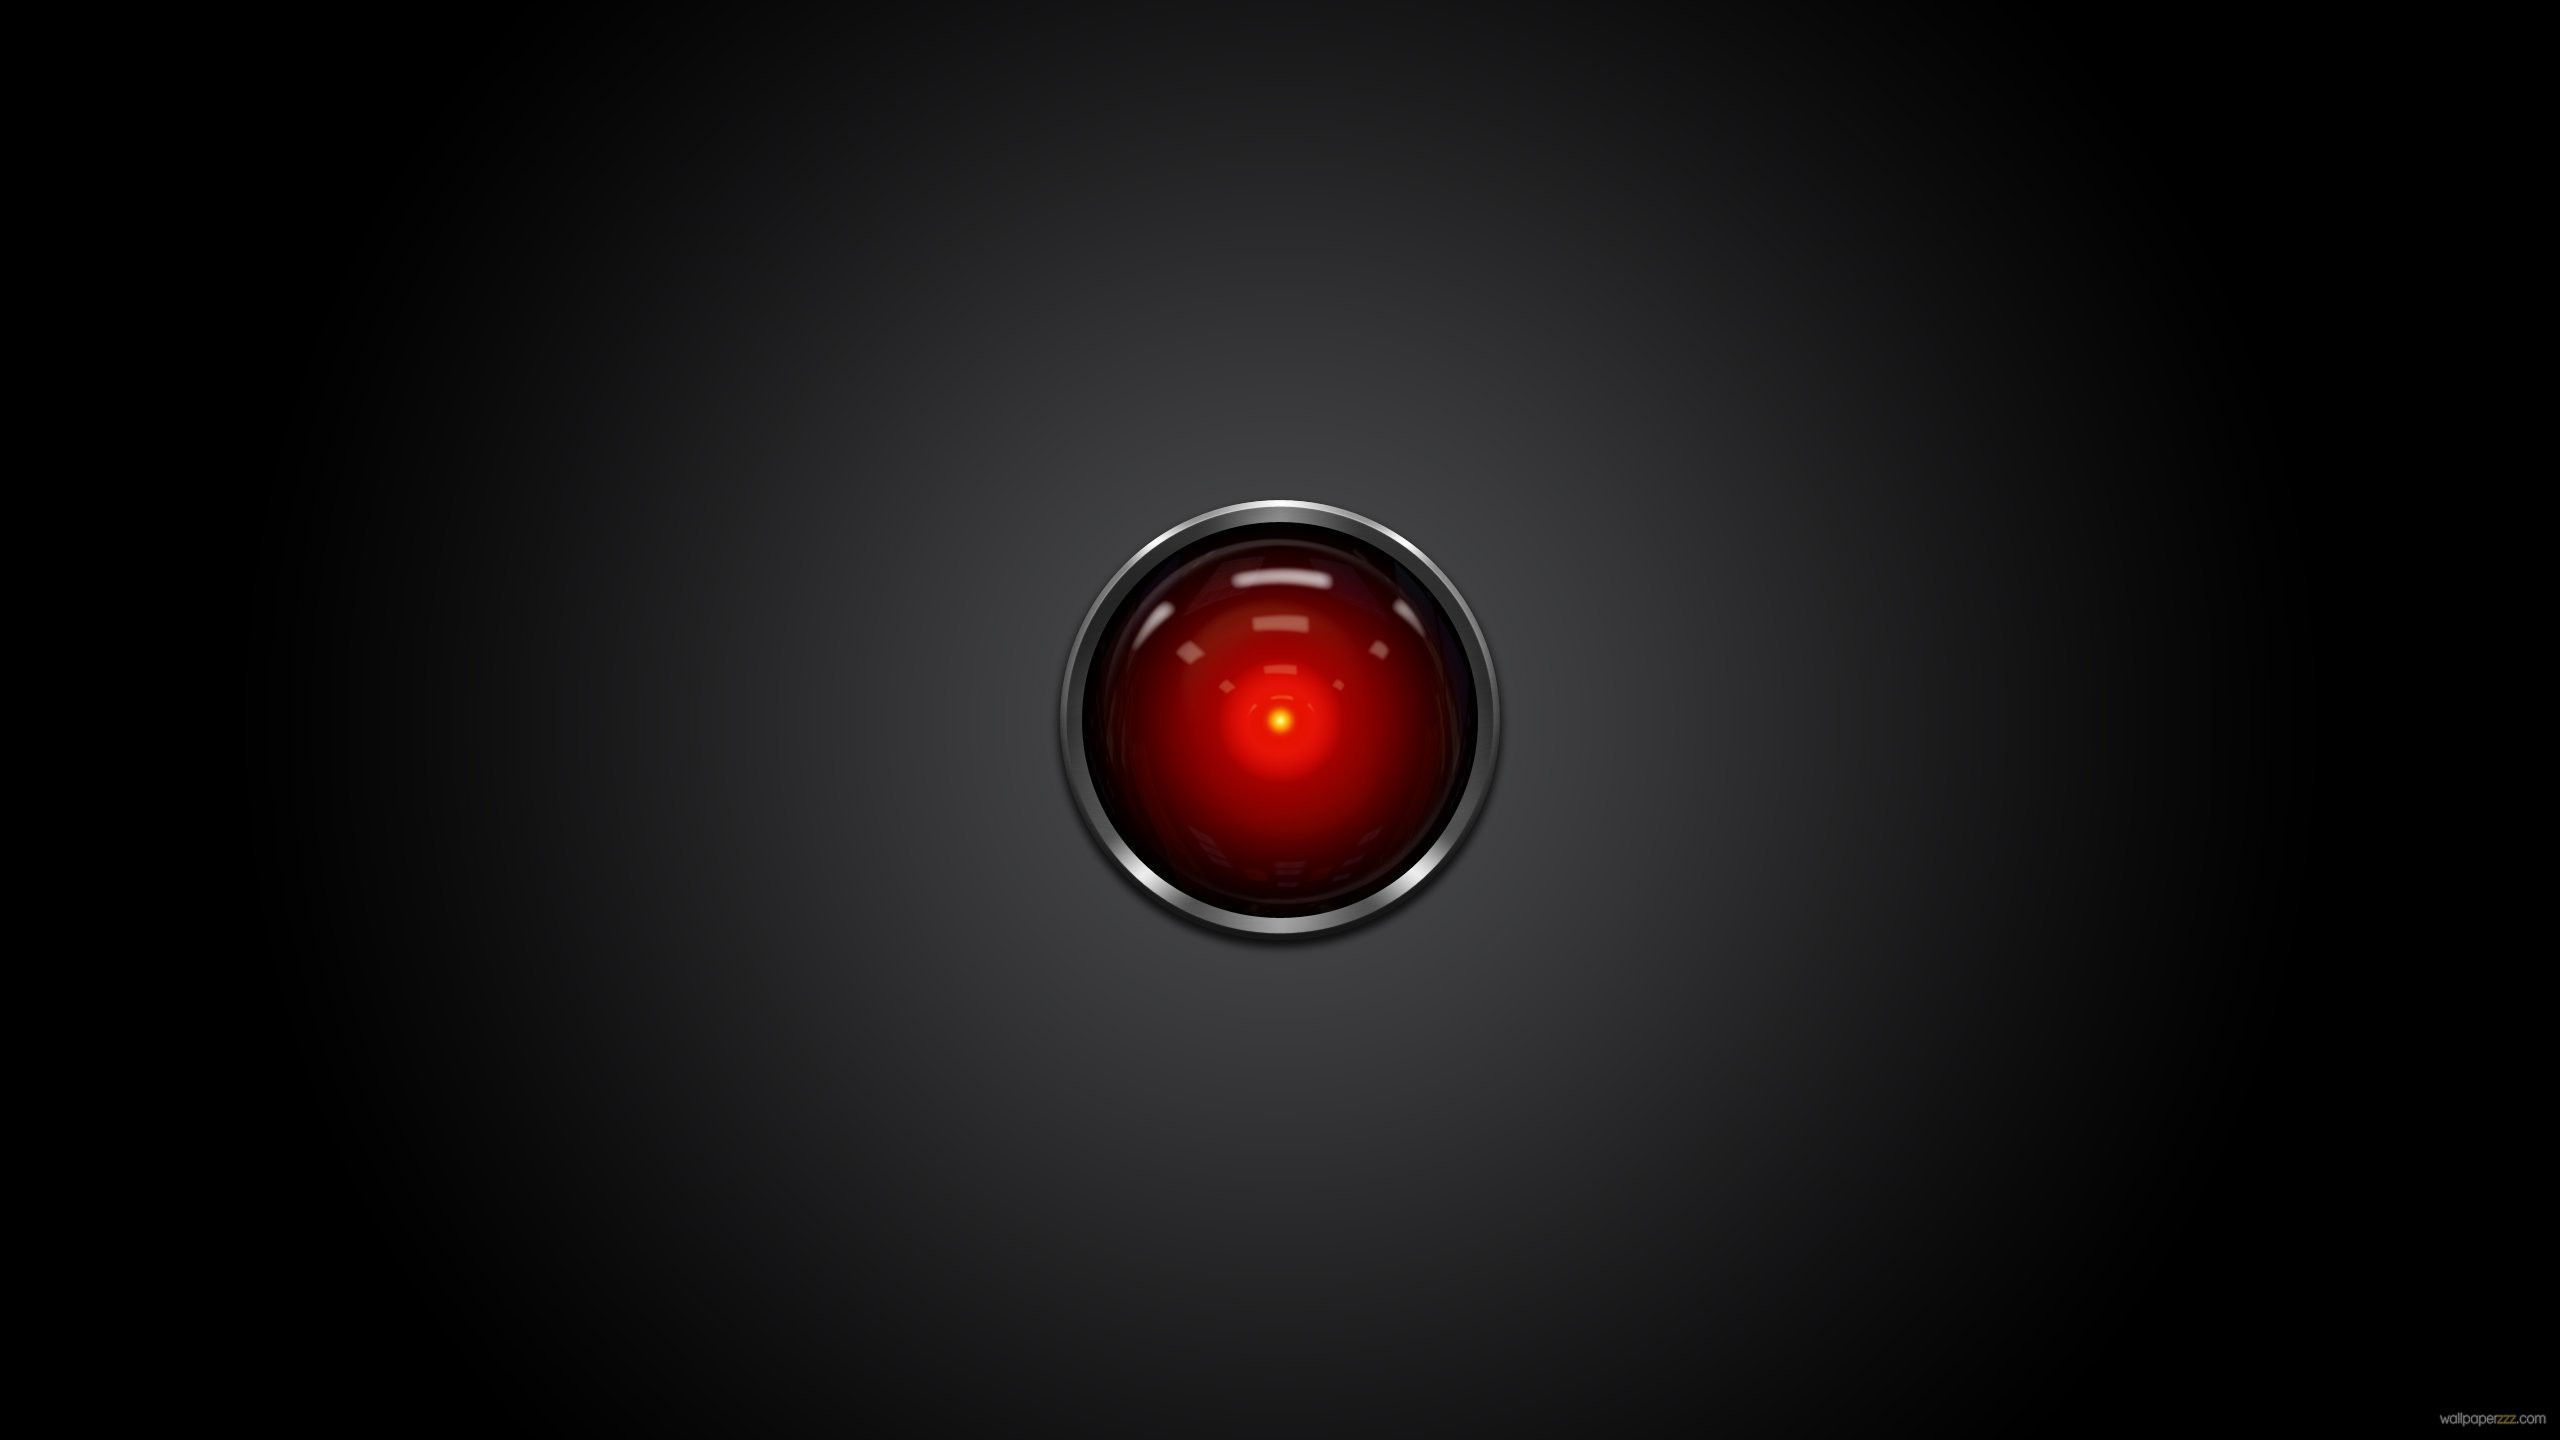 2560x1440 Download HAL 9000 HD Wallpaper—Free Wallpaper